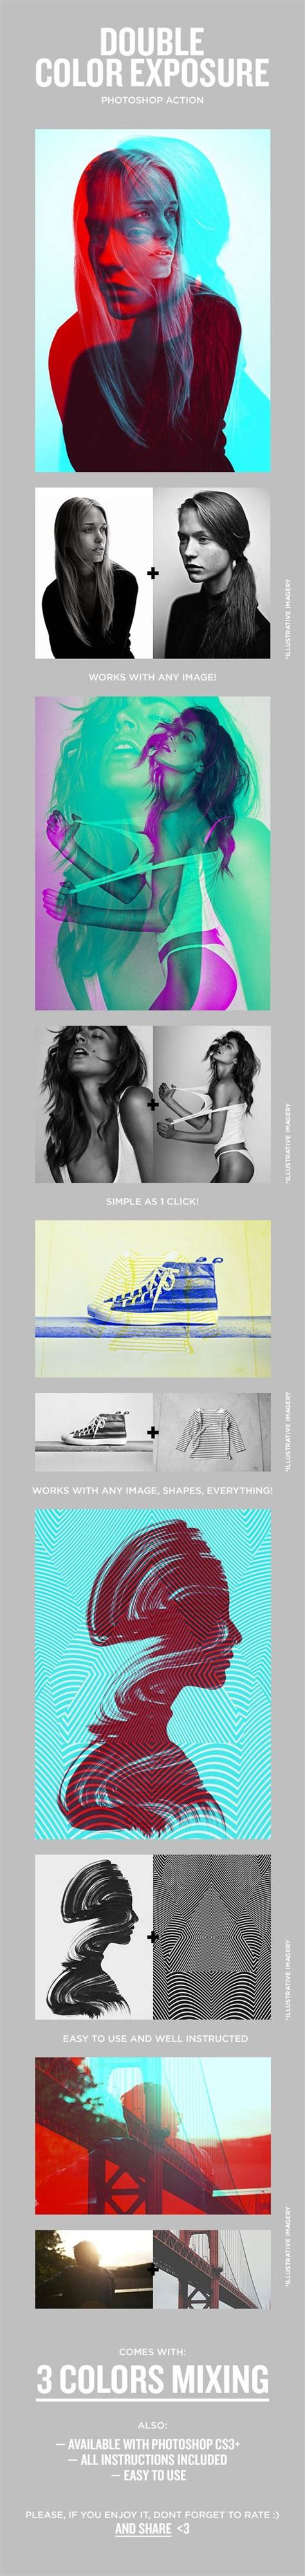 graphicriver double exposure tutorial double color exposure photoshop actions photoshop and